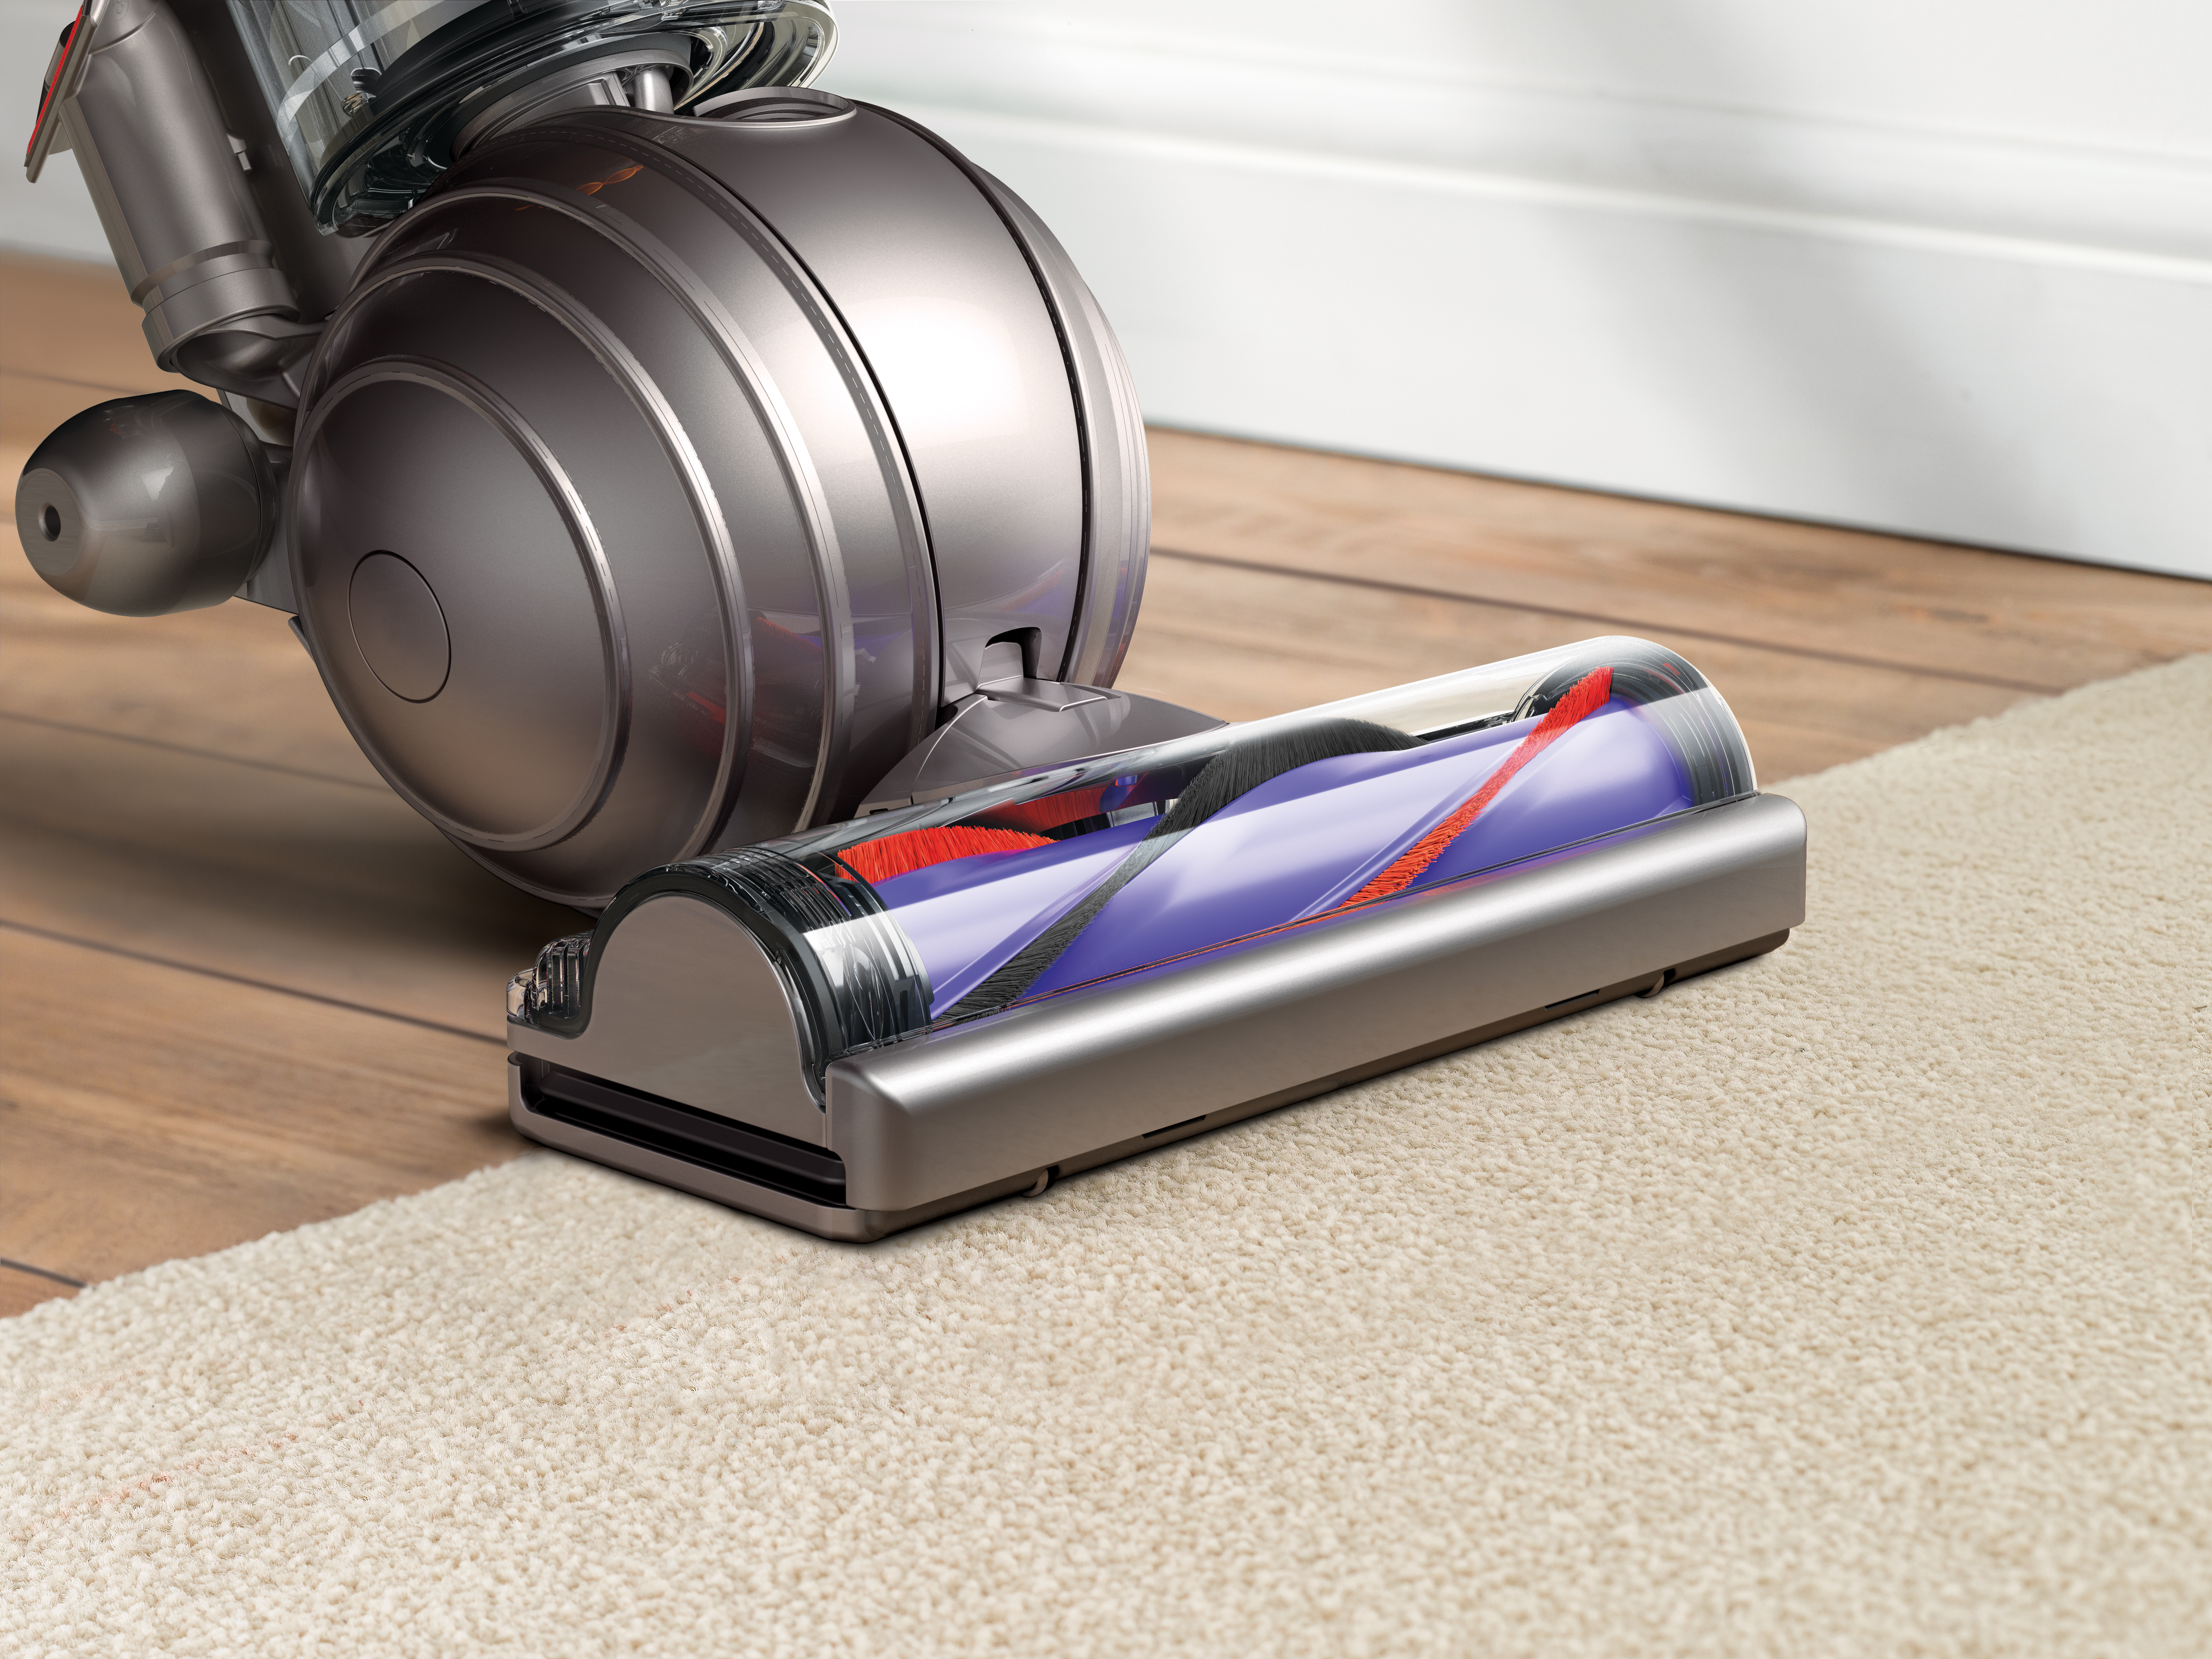 Dyson-DC50-Ball-Compact-Allergy-HEPA-Upright-Vacuum-Blue-New thumbnail 5